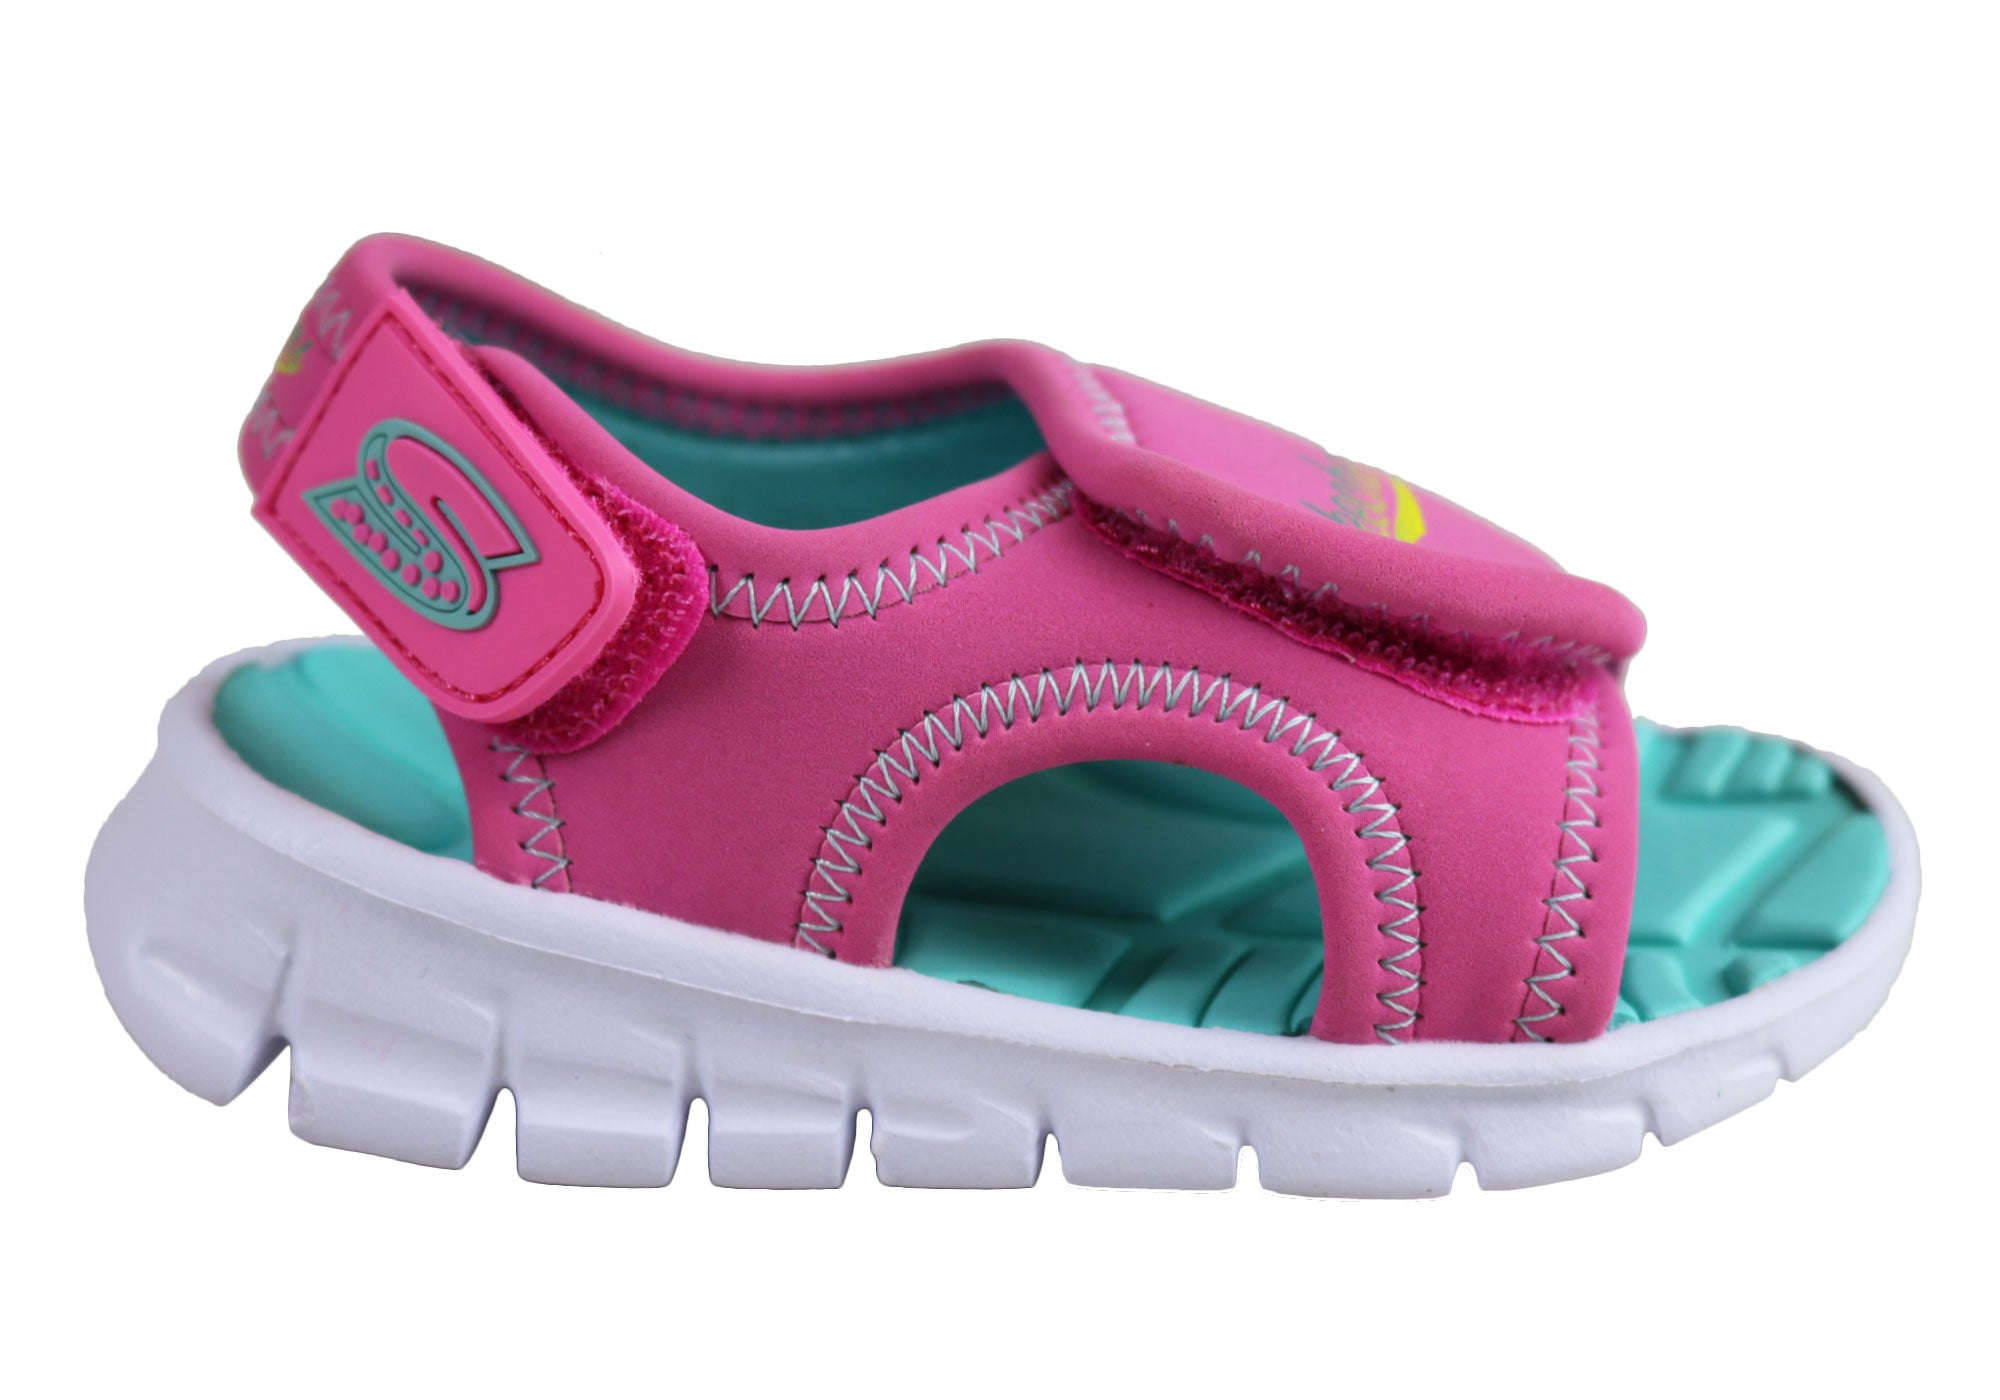 Details about Skechers Infant Toddler Kids Cushioned Synergize Adjustable Sandals KidsShoes